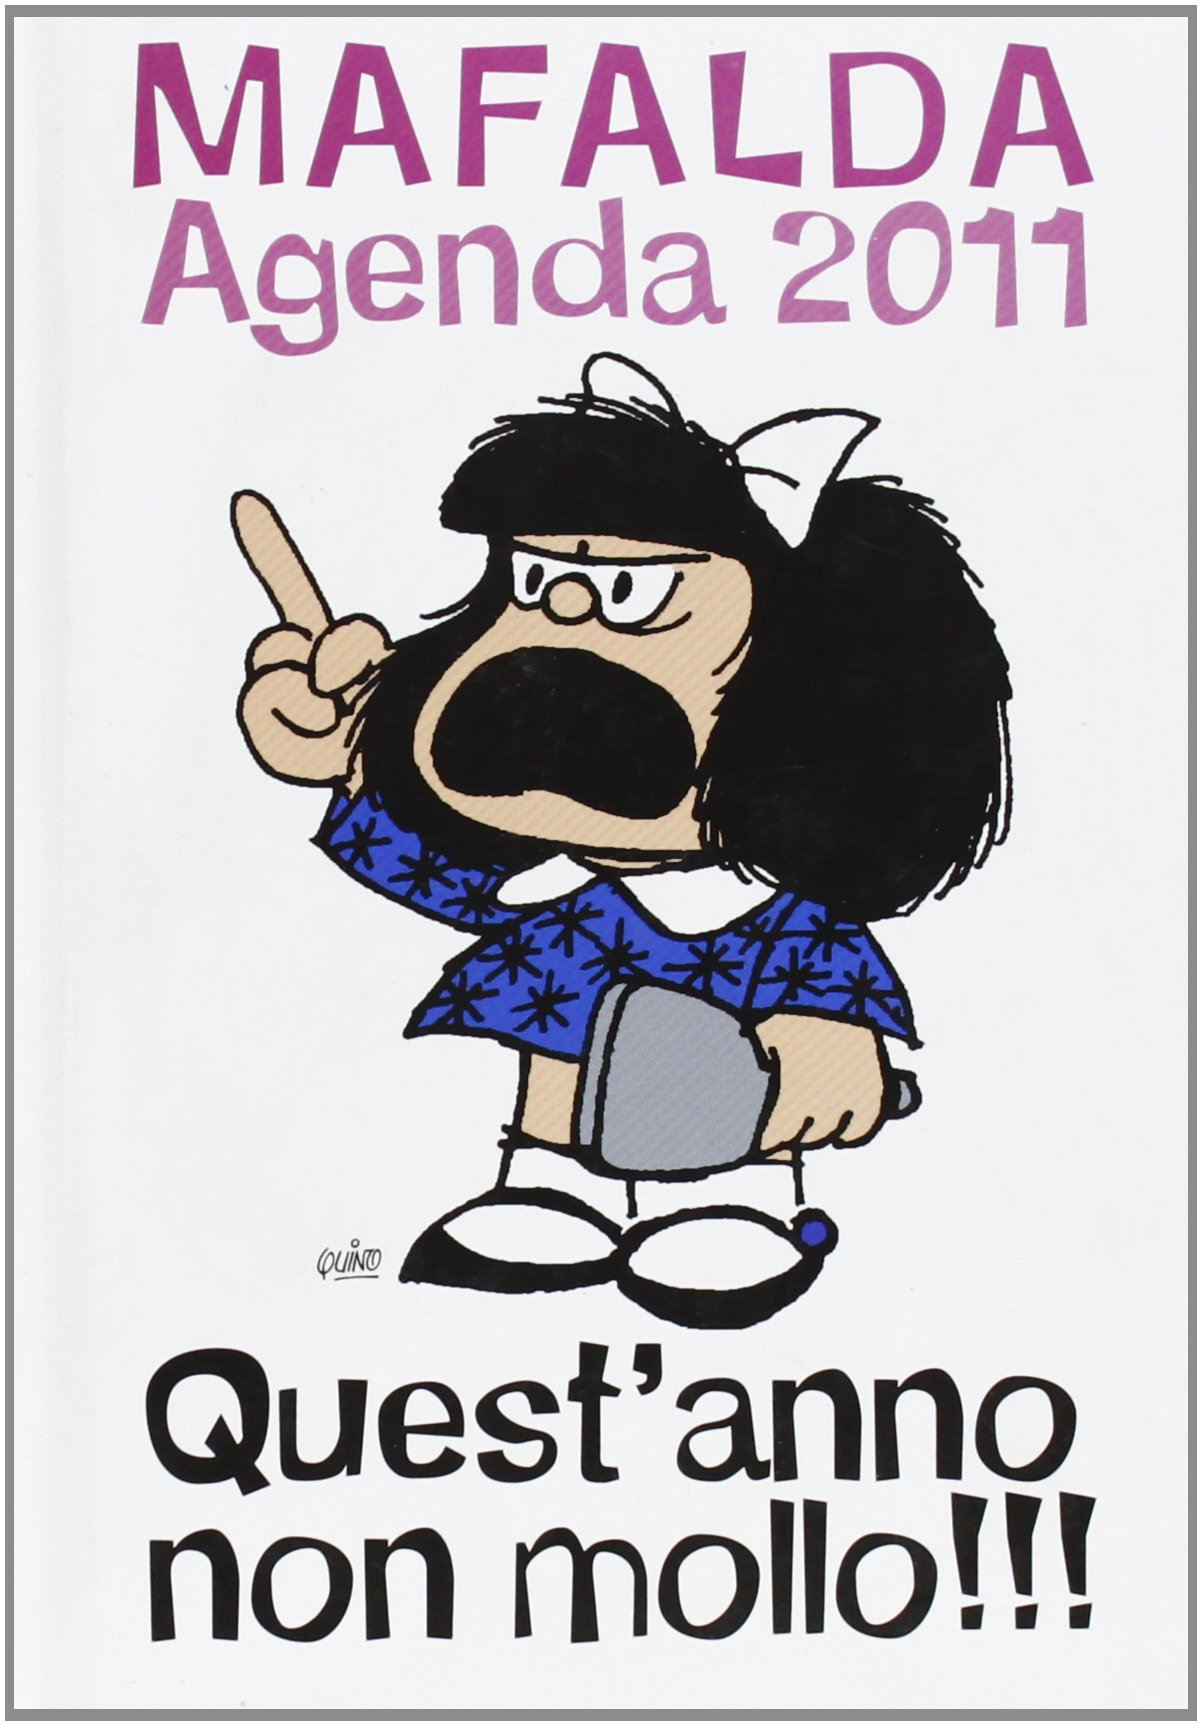 Questanno non mollo!!! Mafalda. Agenda 2011: Amazon.es ...